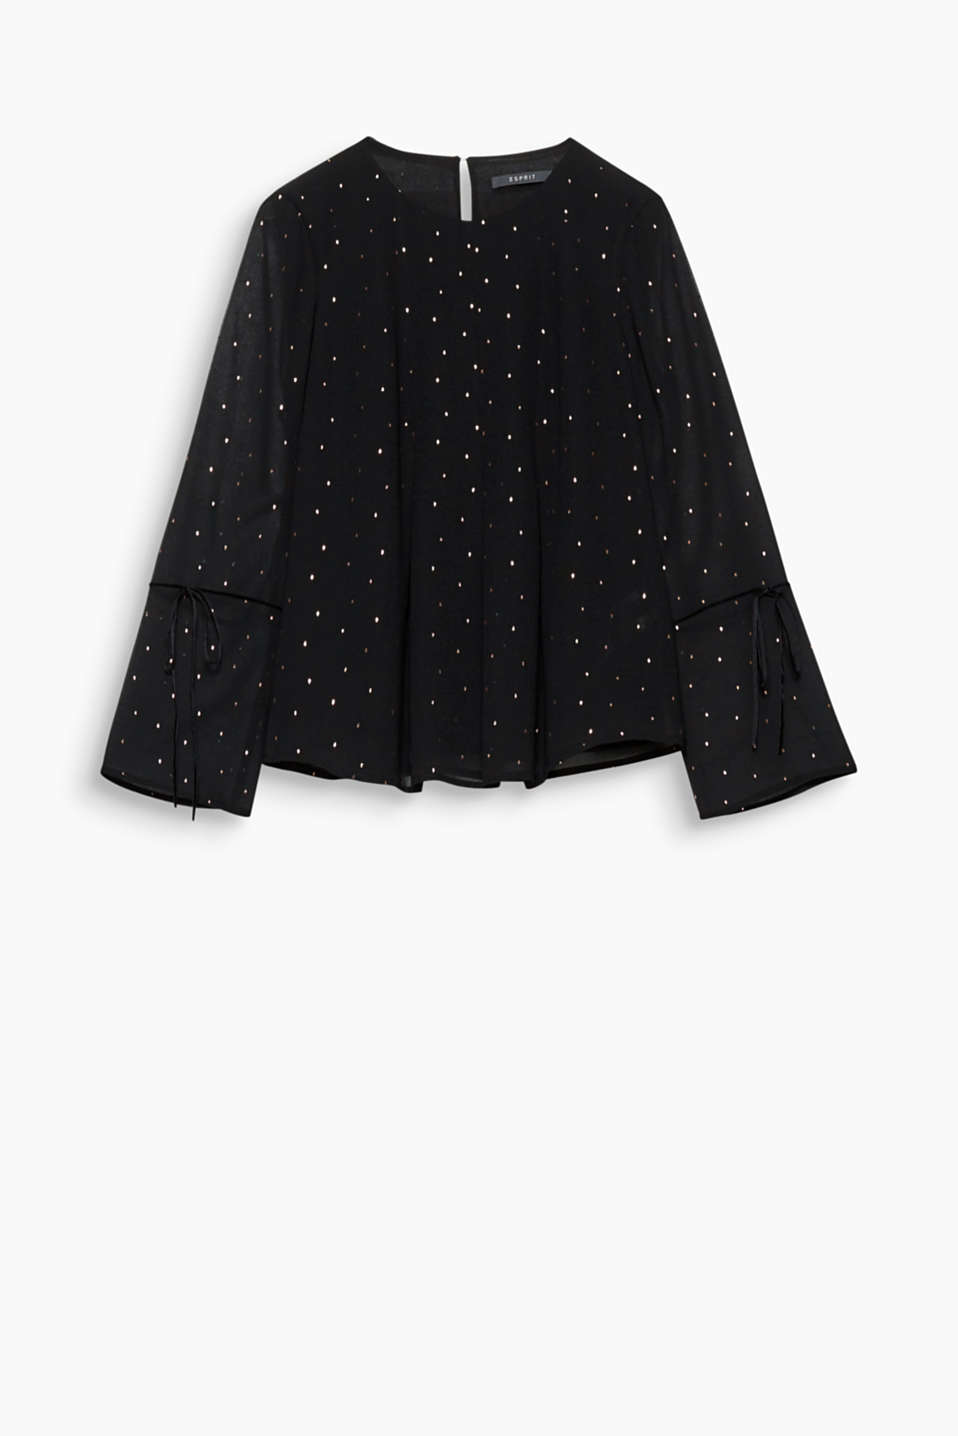 Delicate, feminine, festive: With its sheer sleeves and velvet bow, this blouse with gold polka dots exudes pure romance.